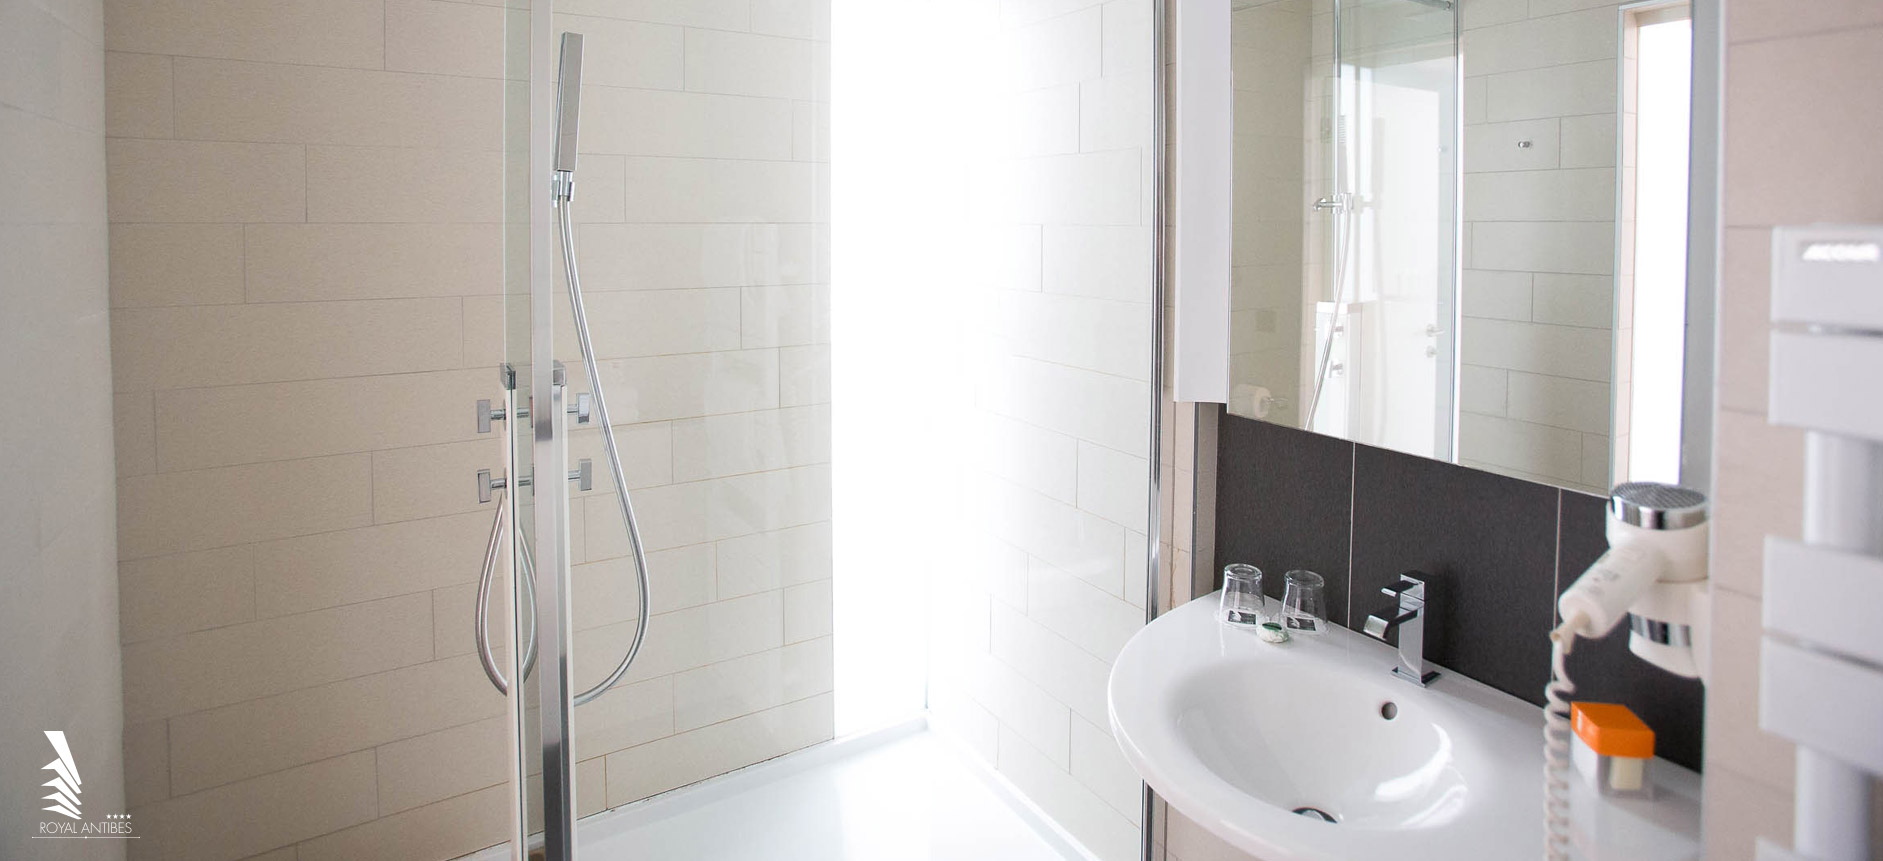 Salle De Bain Antibes romantic deluxe room with an italian shower and a city view